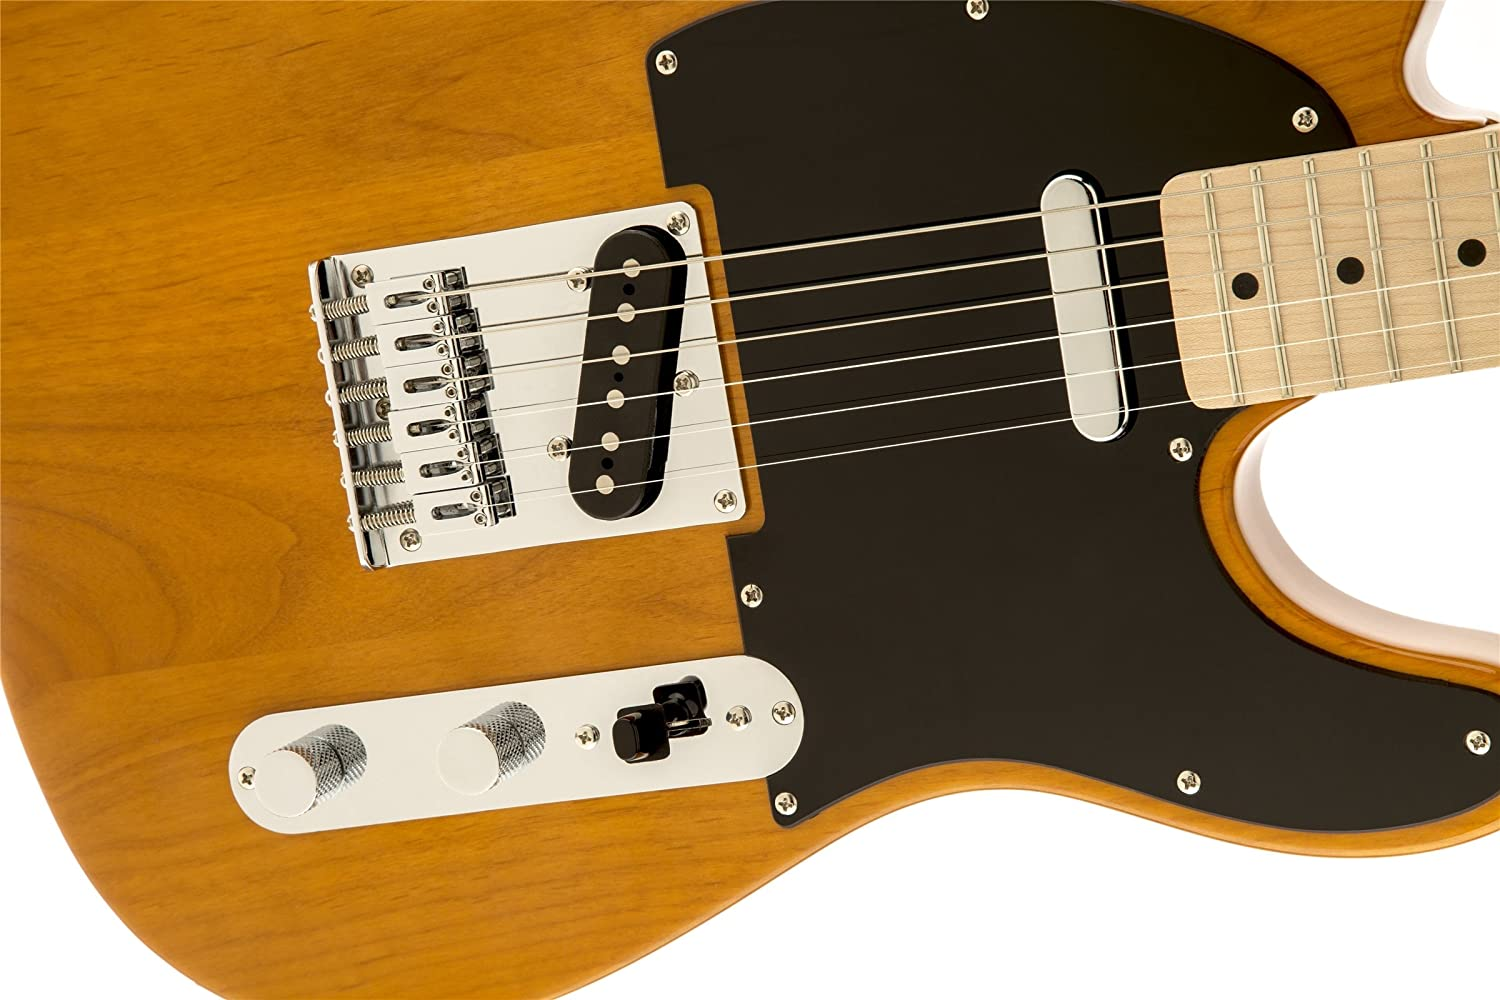 Squier By Fender Affinity Telecaster Beginner Electric 4 Way Wiring Guitar Maple Fingerboard Butterscotch Blonde Musical Instruments